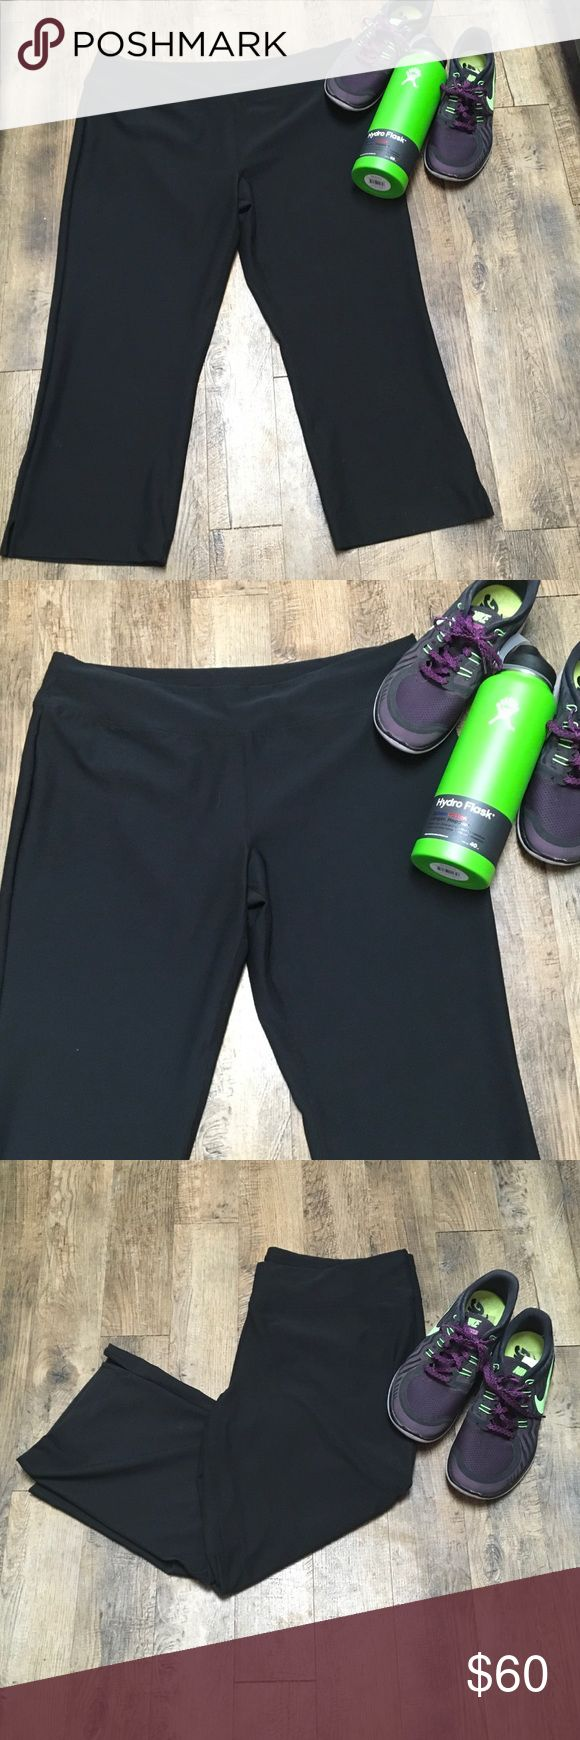 """LUCY CROPPED BLACK VITAL PANT COMFORT ANYTIME XL❣️ Lucy VITAL pant Workout or anytime, you will live in these. Moisture-wicking, breathable fabric, Relaxed fit with bootcut leg, vents.,88 % Polyester, 12% Lycra Spandex XL...38""""  full waistband,11"""" rise,24"""" inseam❣️🖤 LUCY Vital Capri Pants Ankle & Cropped"""